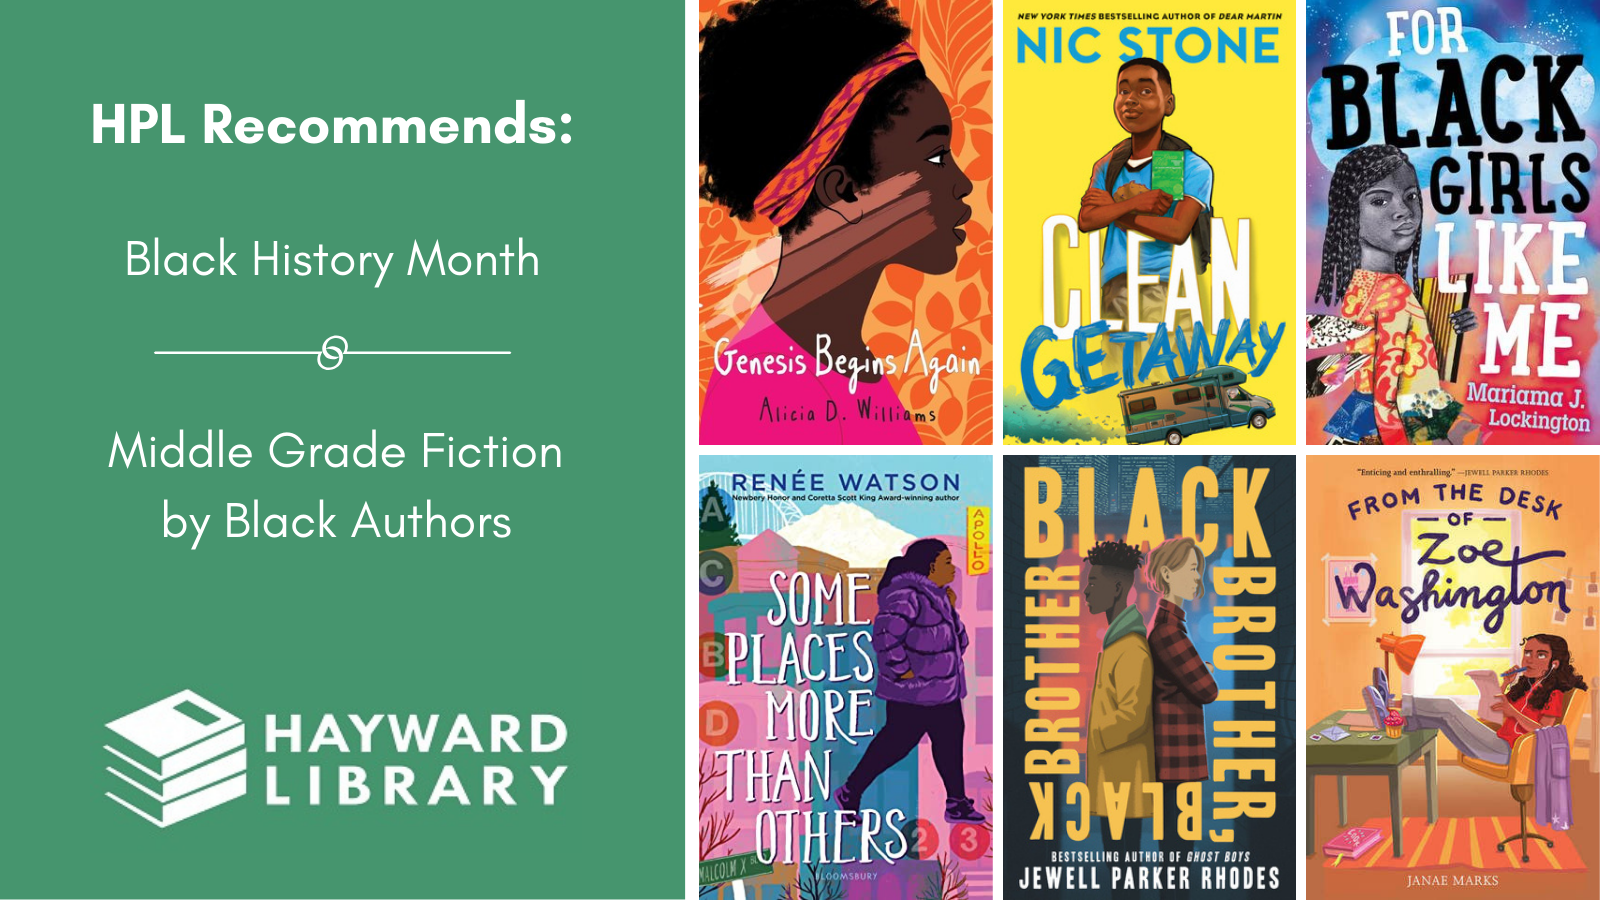 Collage of book covers with a green block on left side that says HPL Recommends, Black History Month, Middle Grade Fiction by Black Authors in white text, with Hayward Library logo below it.